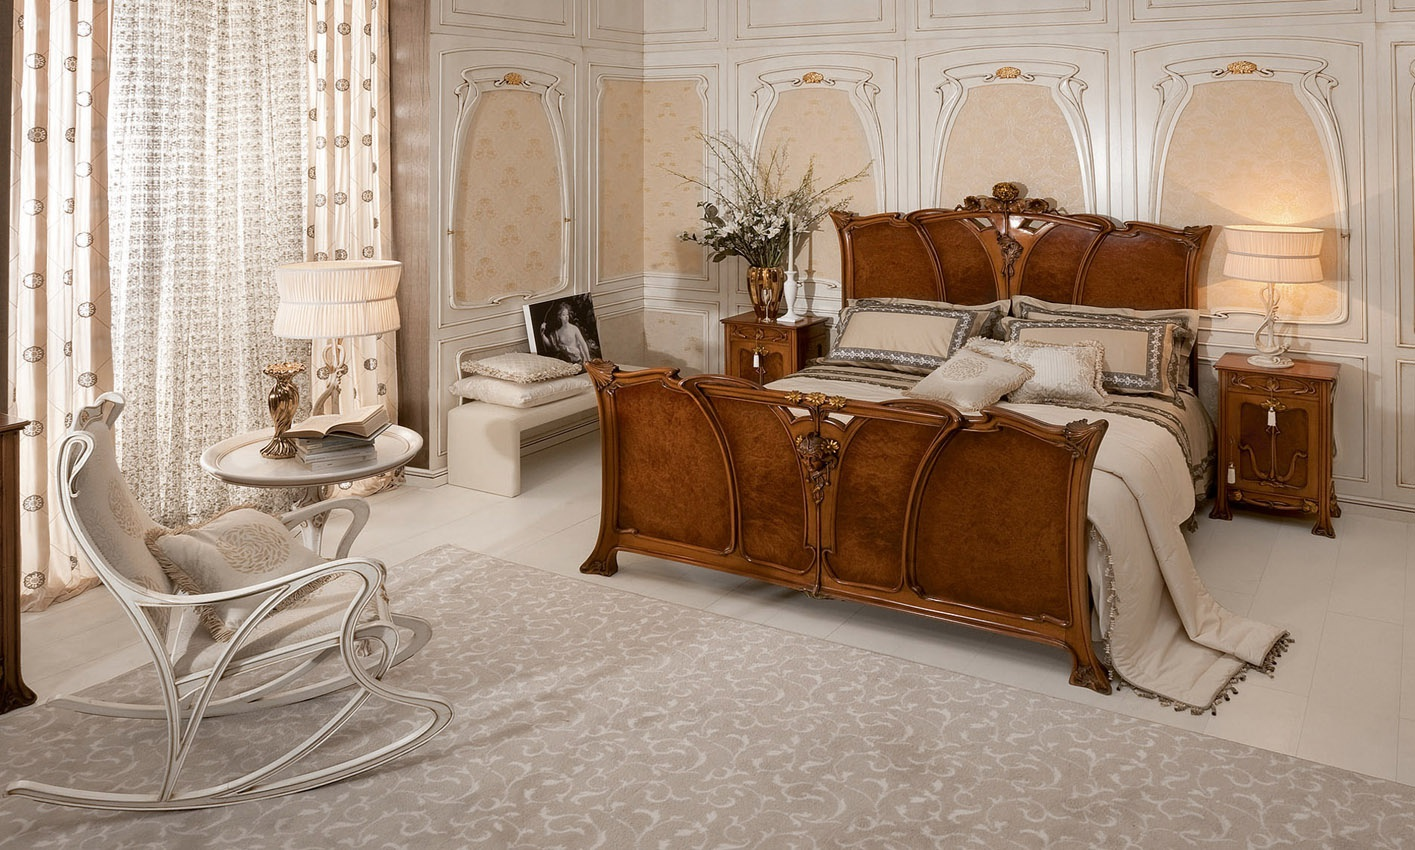 Bed with high headboard by Liberty, Medea